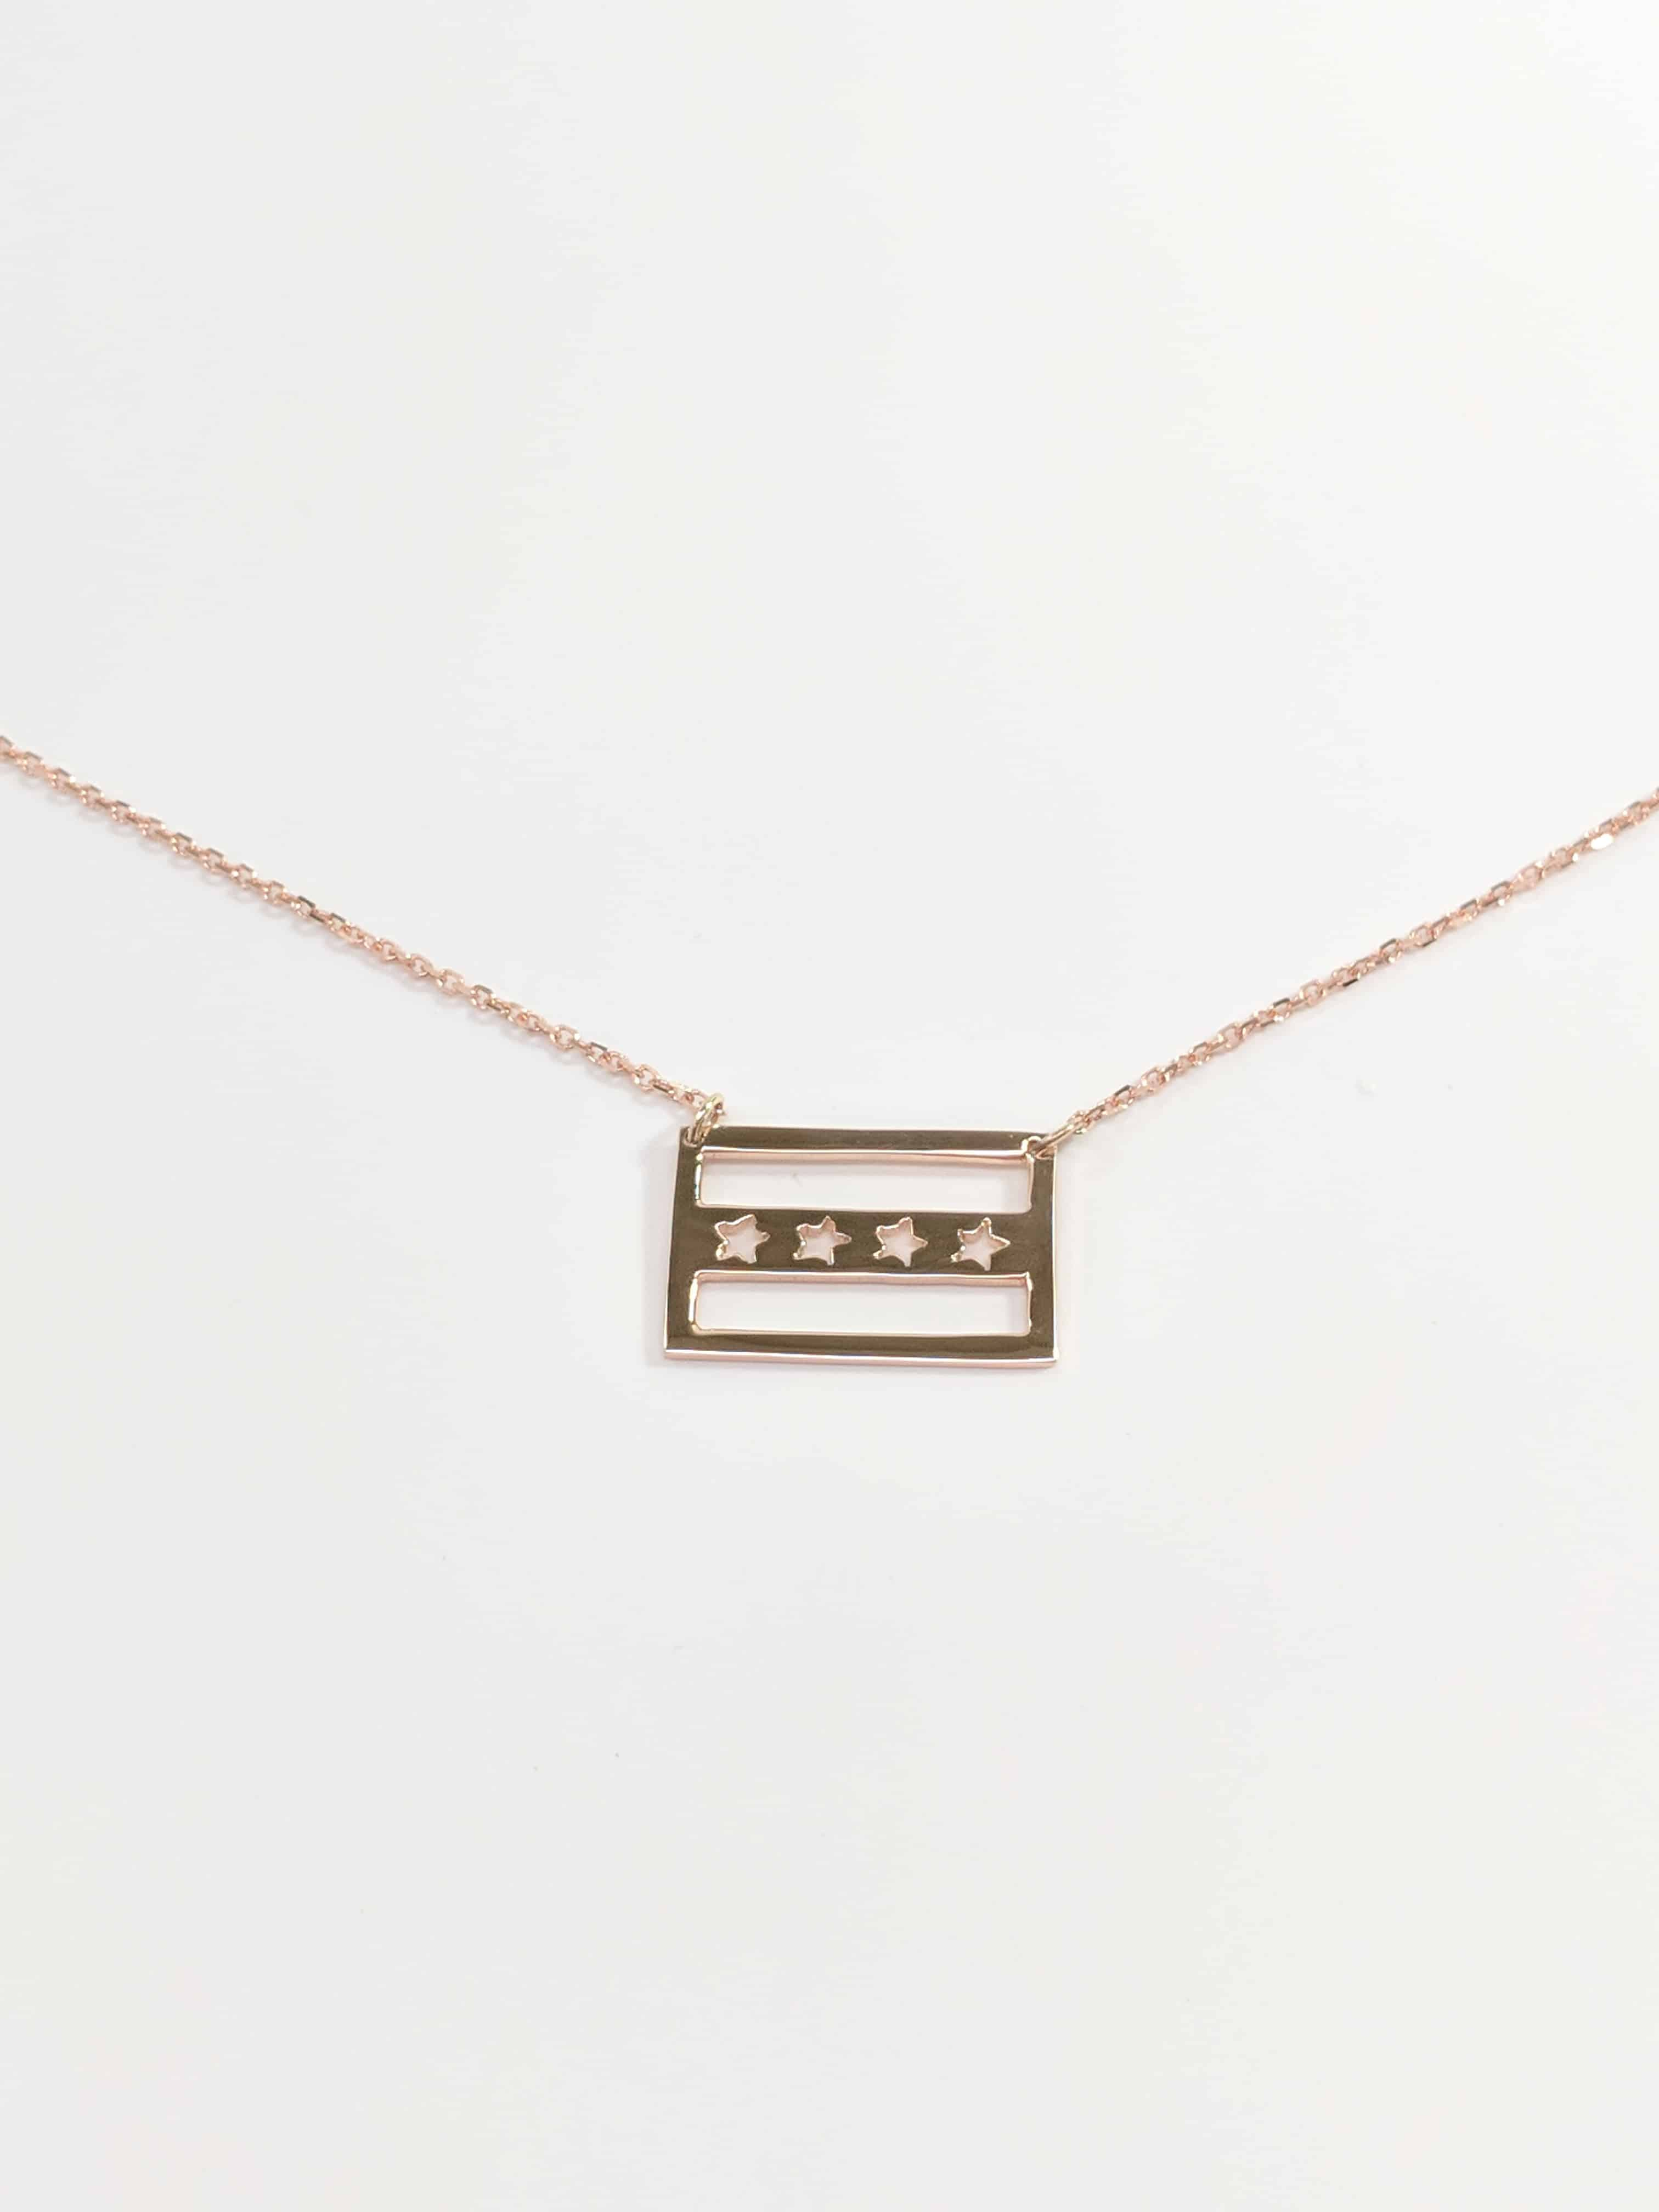 14KT Rose gold City of Chicago Flag pendant Necklace, White and yellow gold, My city necklace,